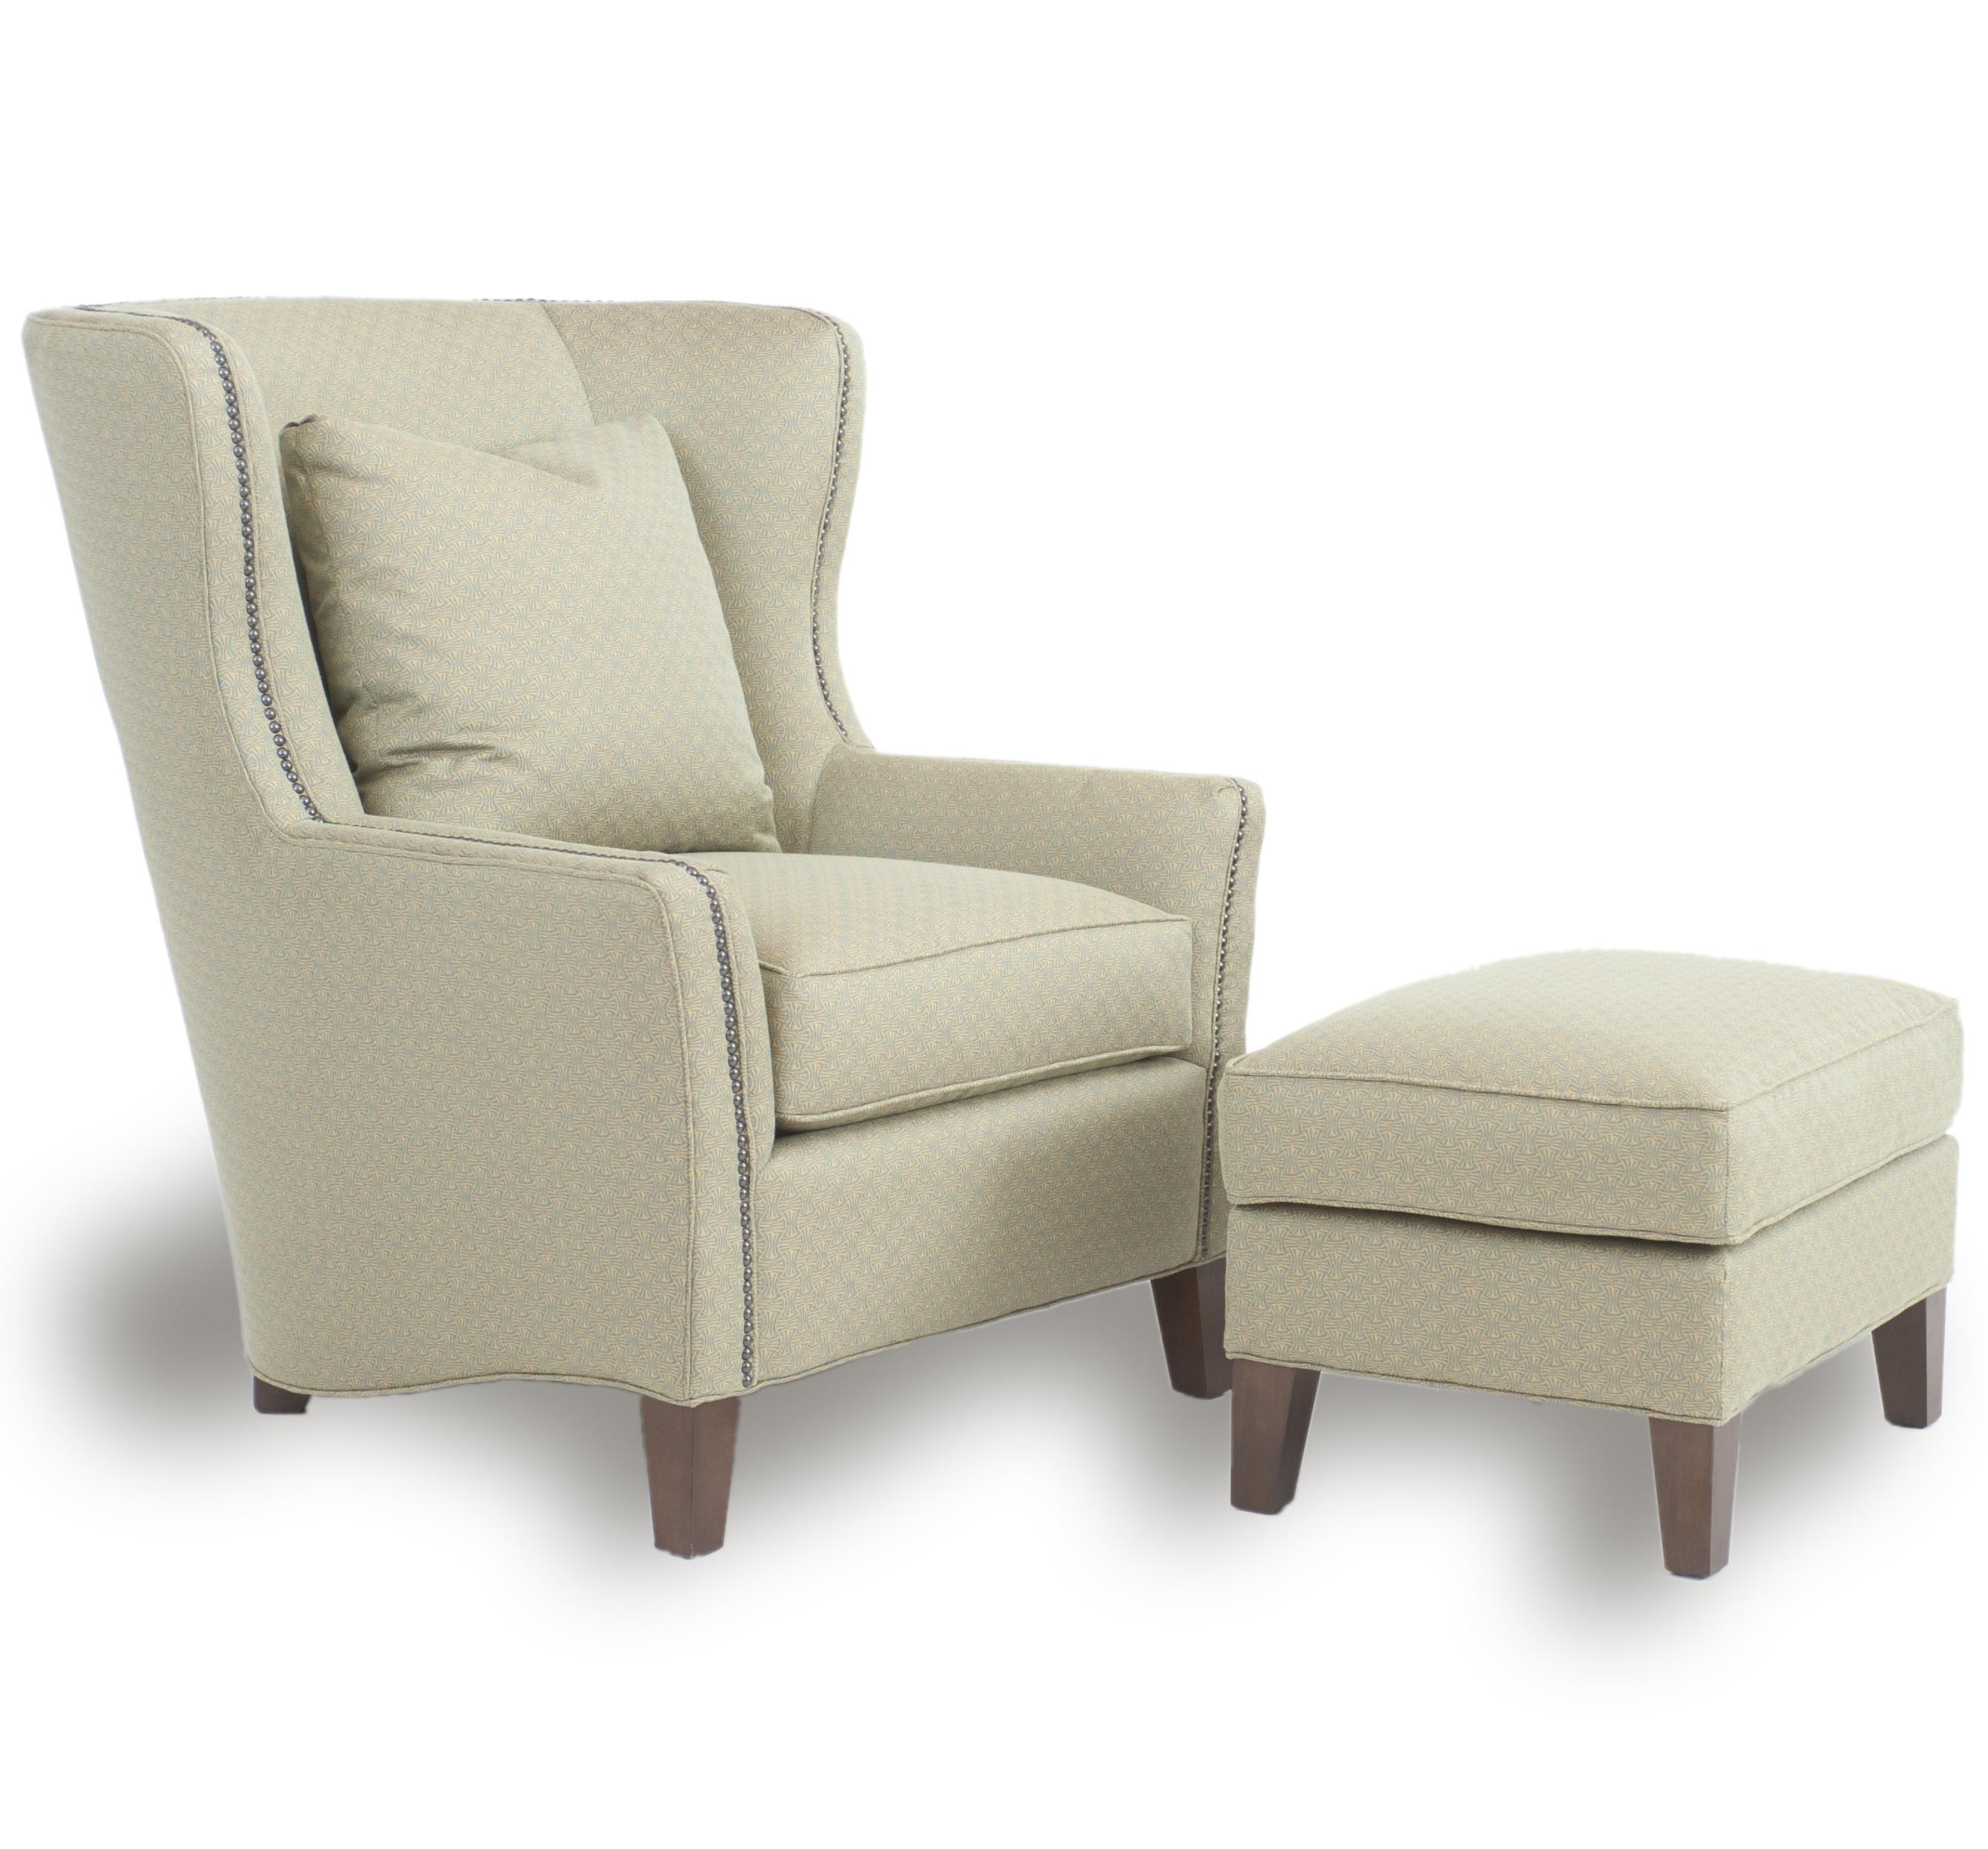 Smith Brothers Accent Chairs And Ottomans Sb 825 30